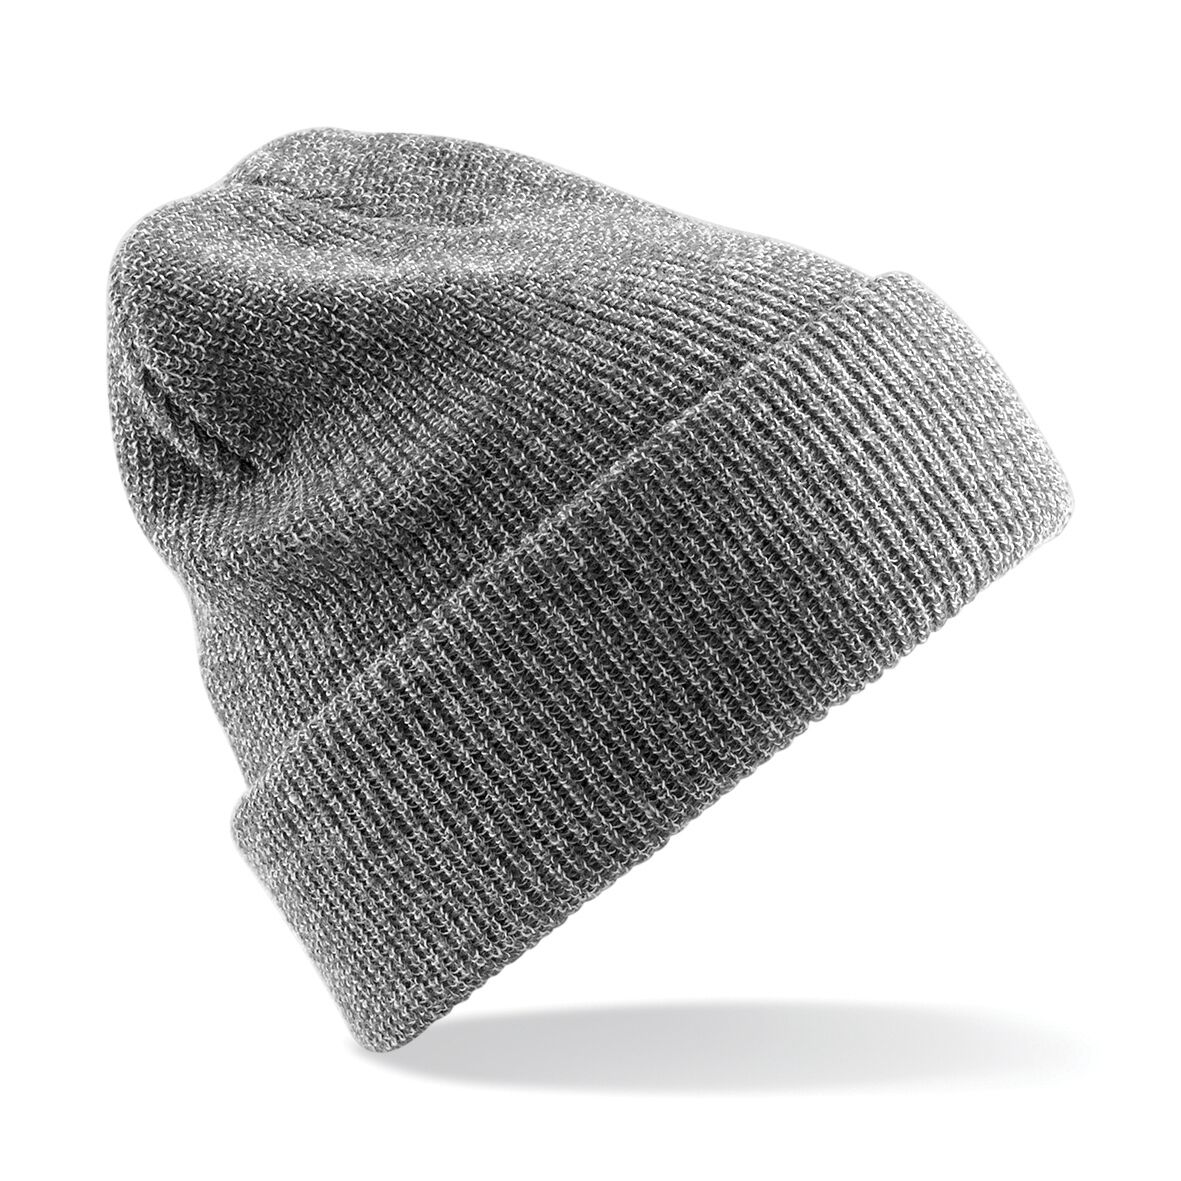 Unisex Beechfield Heritage Vintage Double Knit Beanie Hat Heather Grey One  Size. About this product. Picture 1 of 2  Picture 2 of 2 8f5d0ef909cf